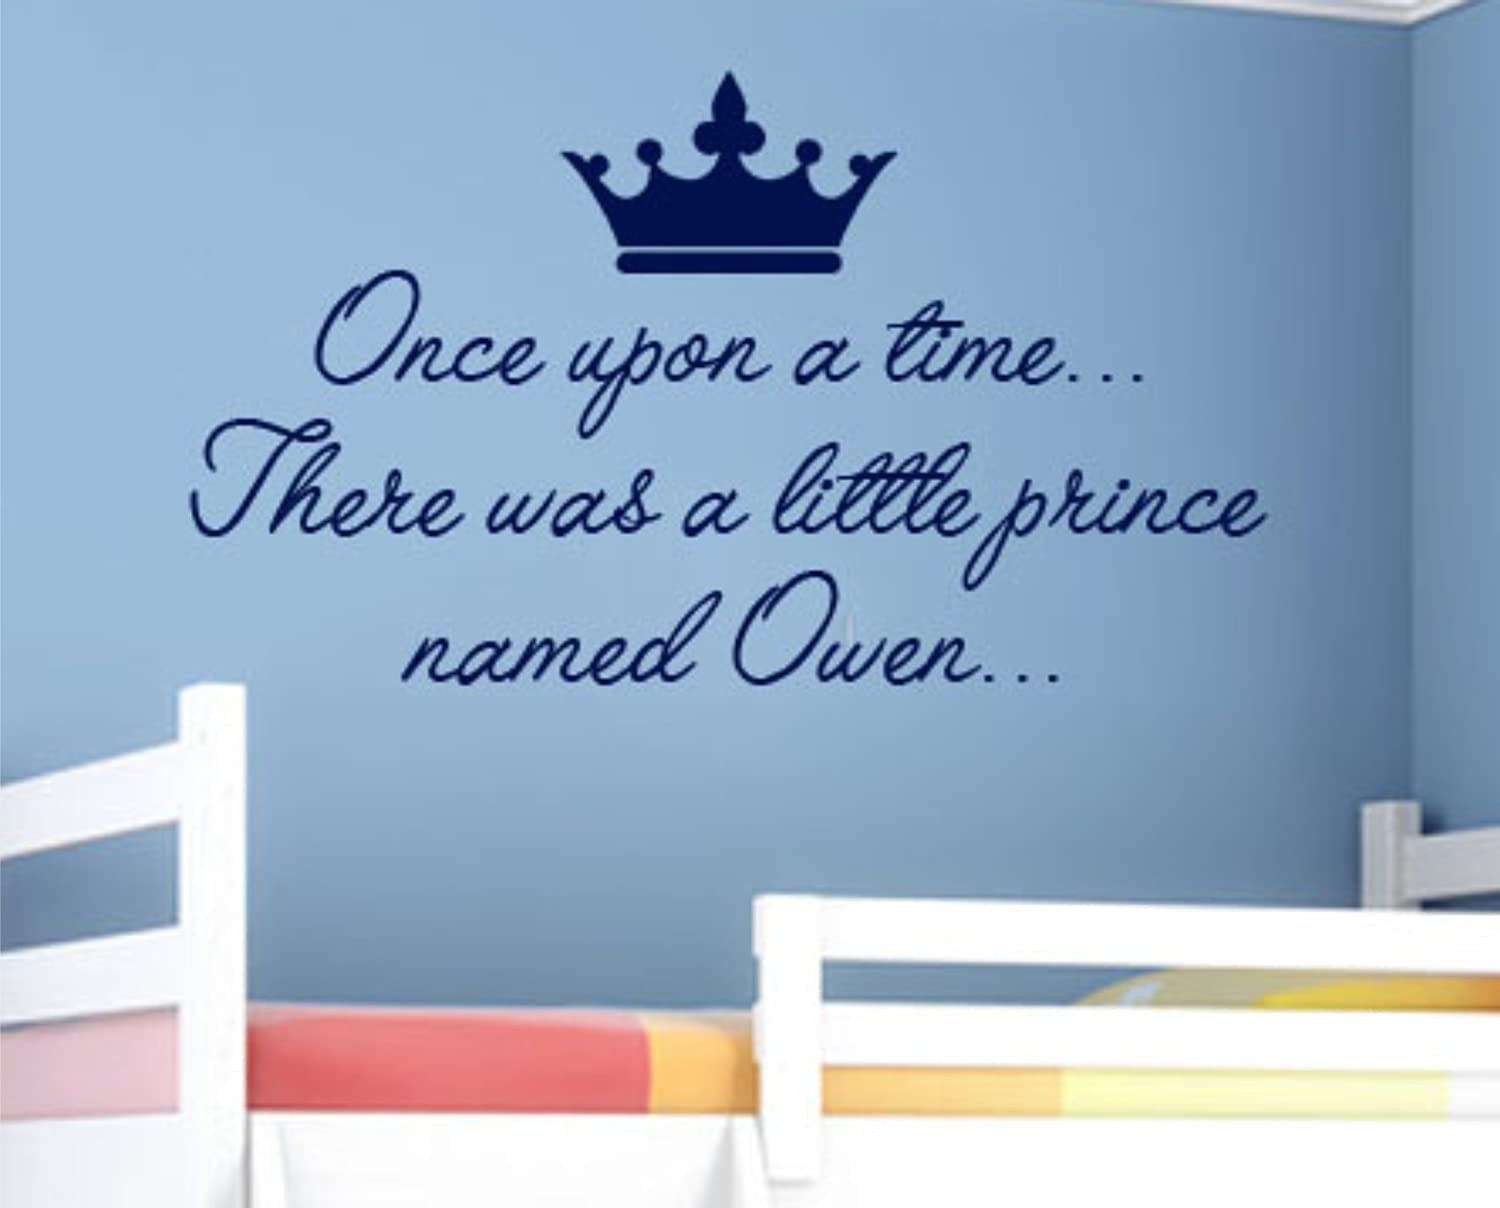 personalised once upon a time there was a little prince named personalised once upon a time there was a little prince named son quotevinyl wall art sticker decal mural any colour just message us 100cm x 50cm vinyl